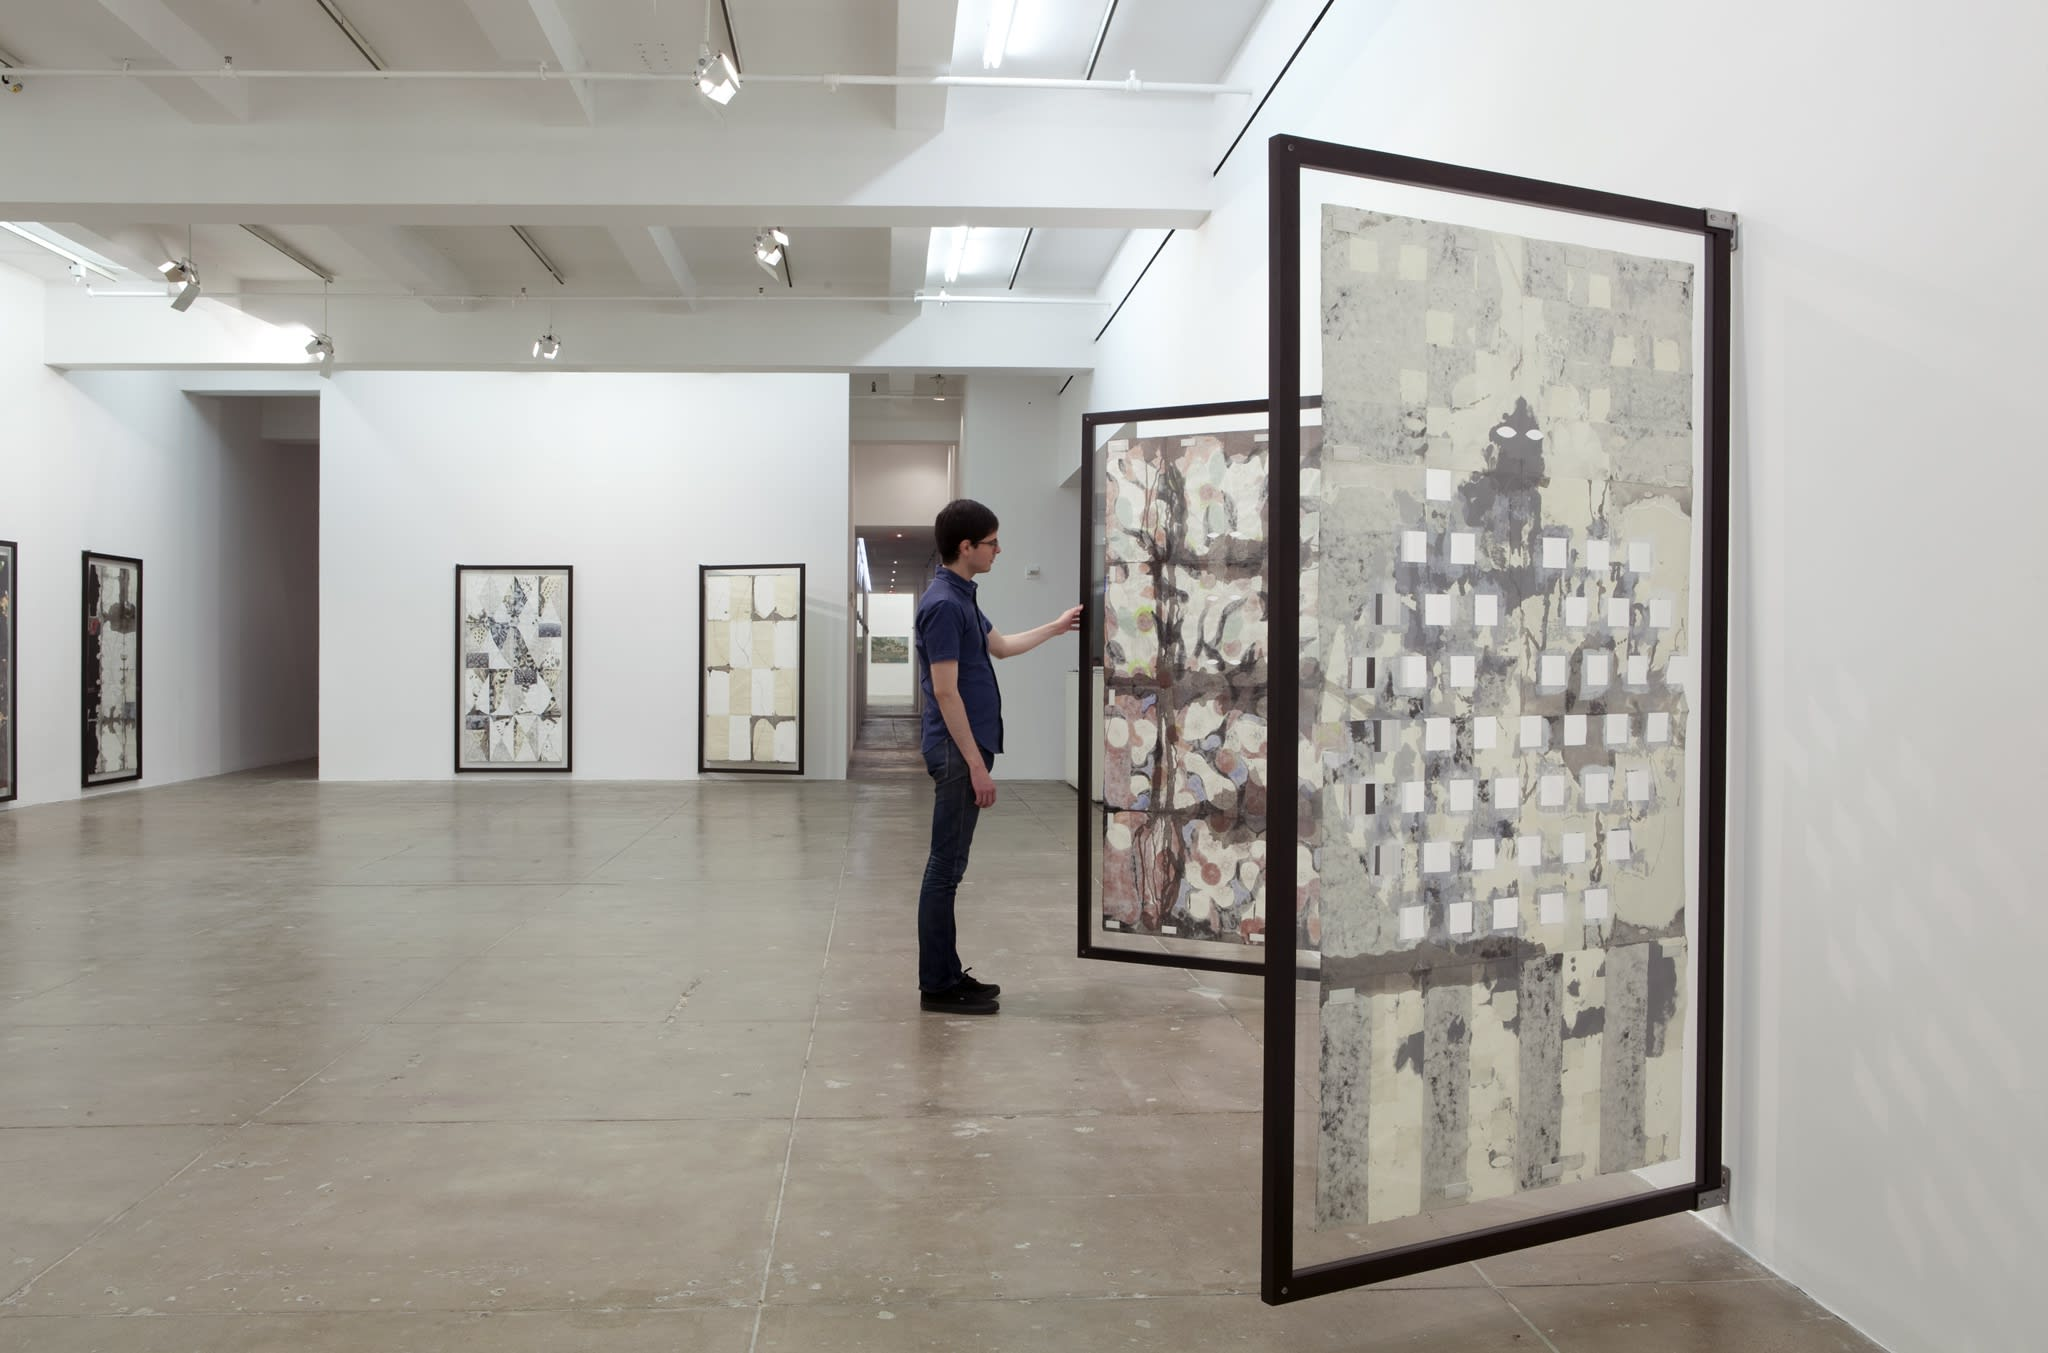 A man views the front and back of a large vertical painting installed on a hinge.